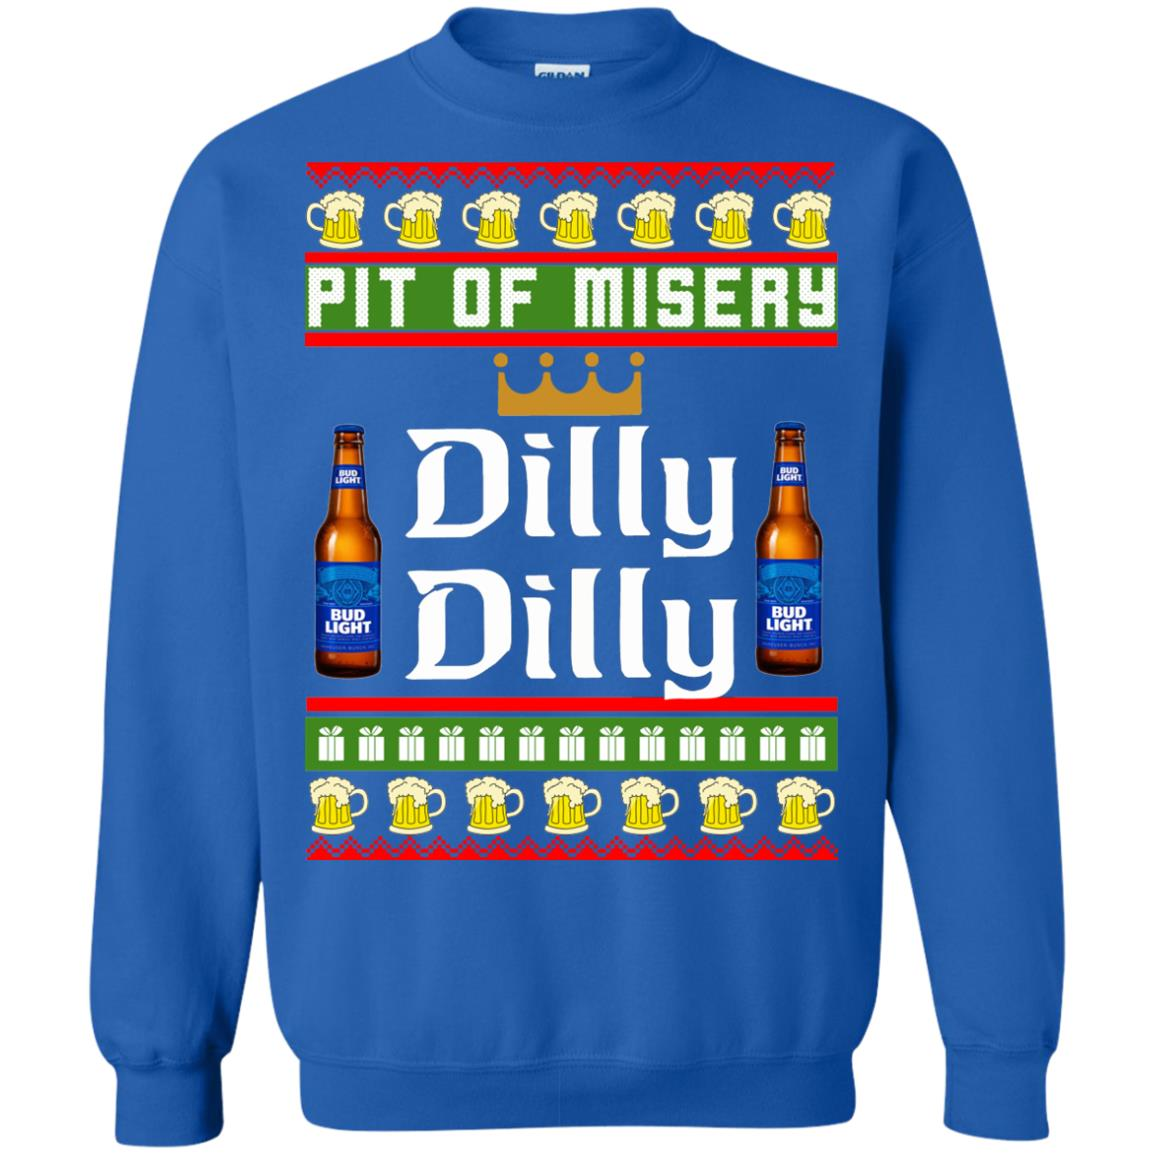 image 6388 - Pit Of Misery Dilly Dilly Ugly Sweater, Long Sleeve